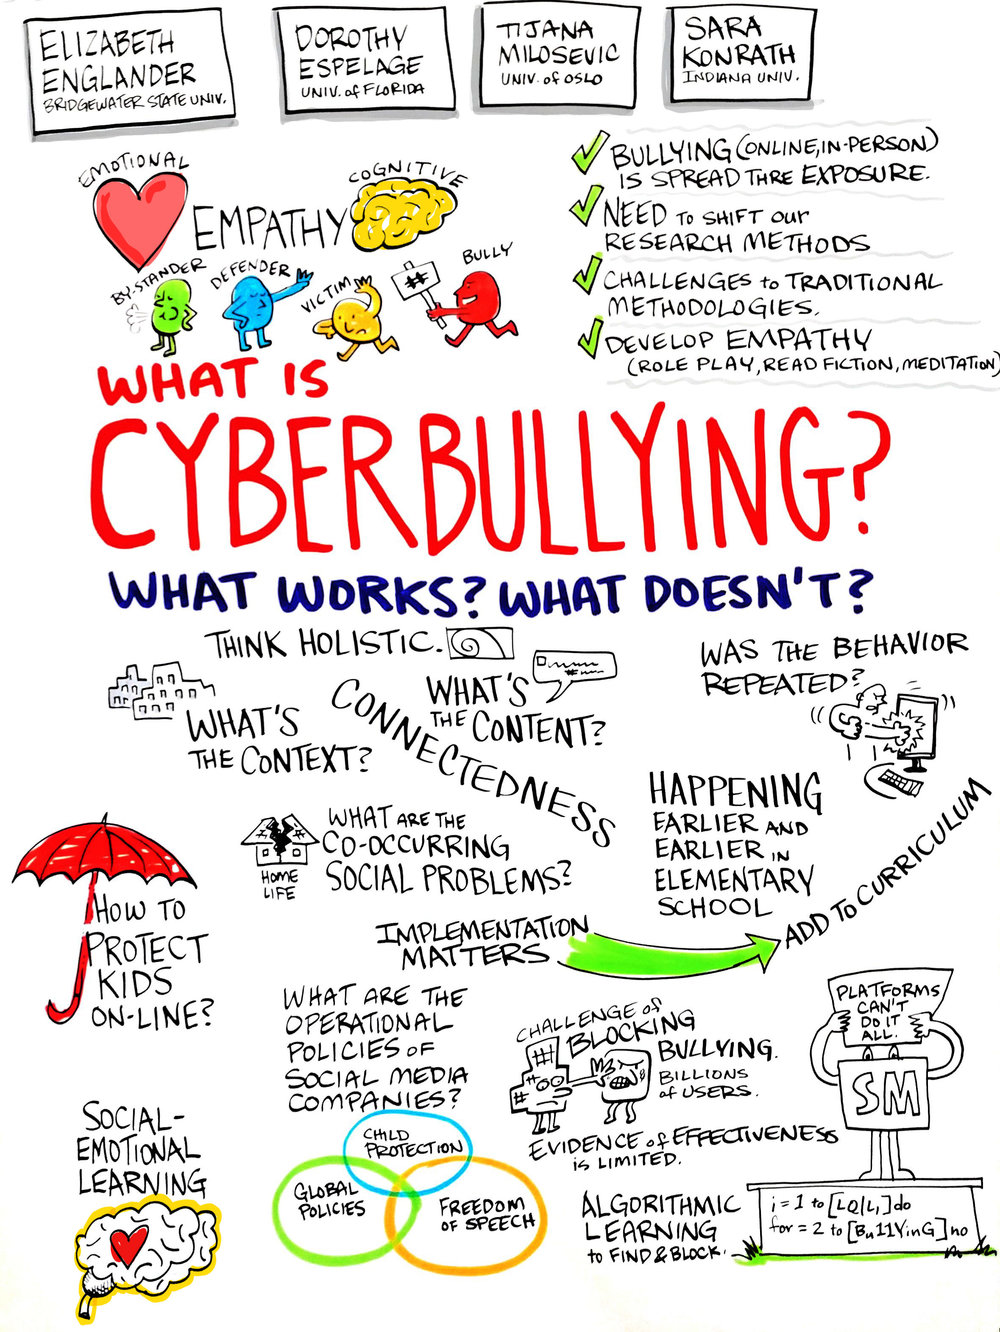 Cyberbullying: What Works, What Doesn't, and Why Not